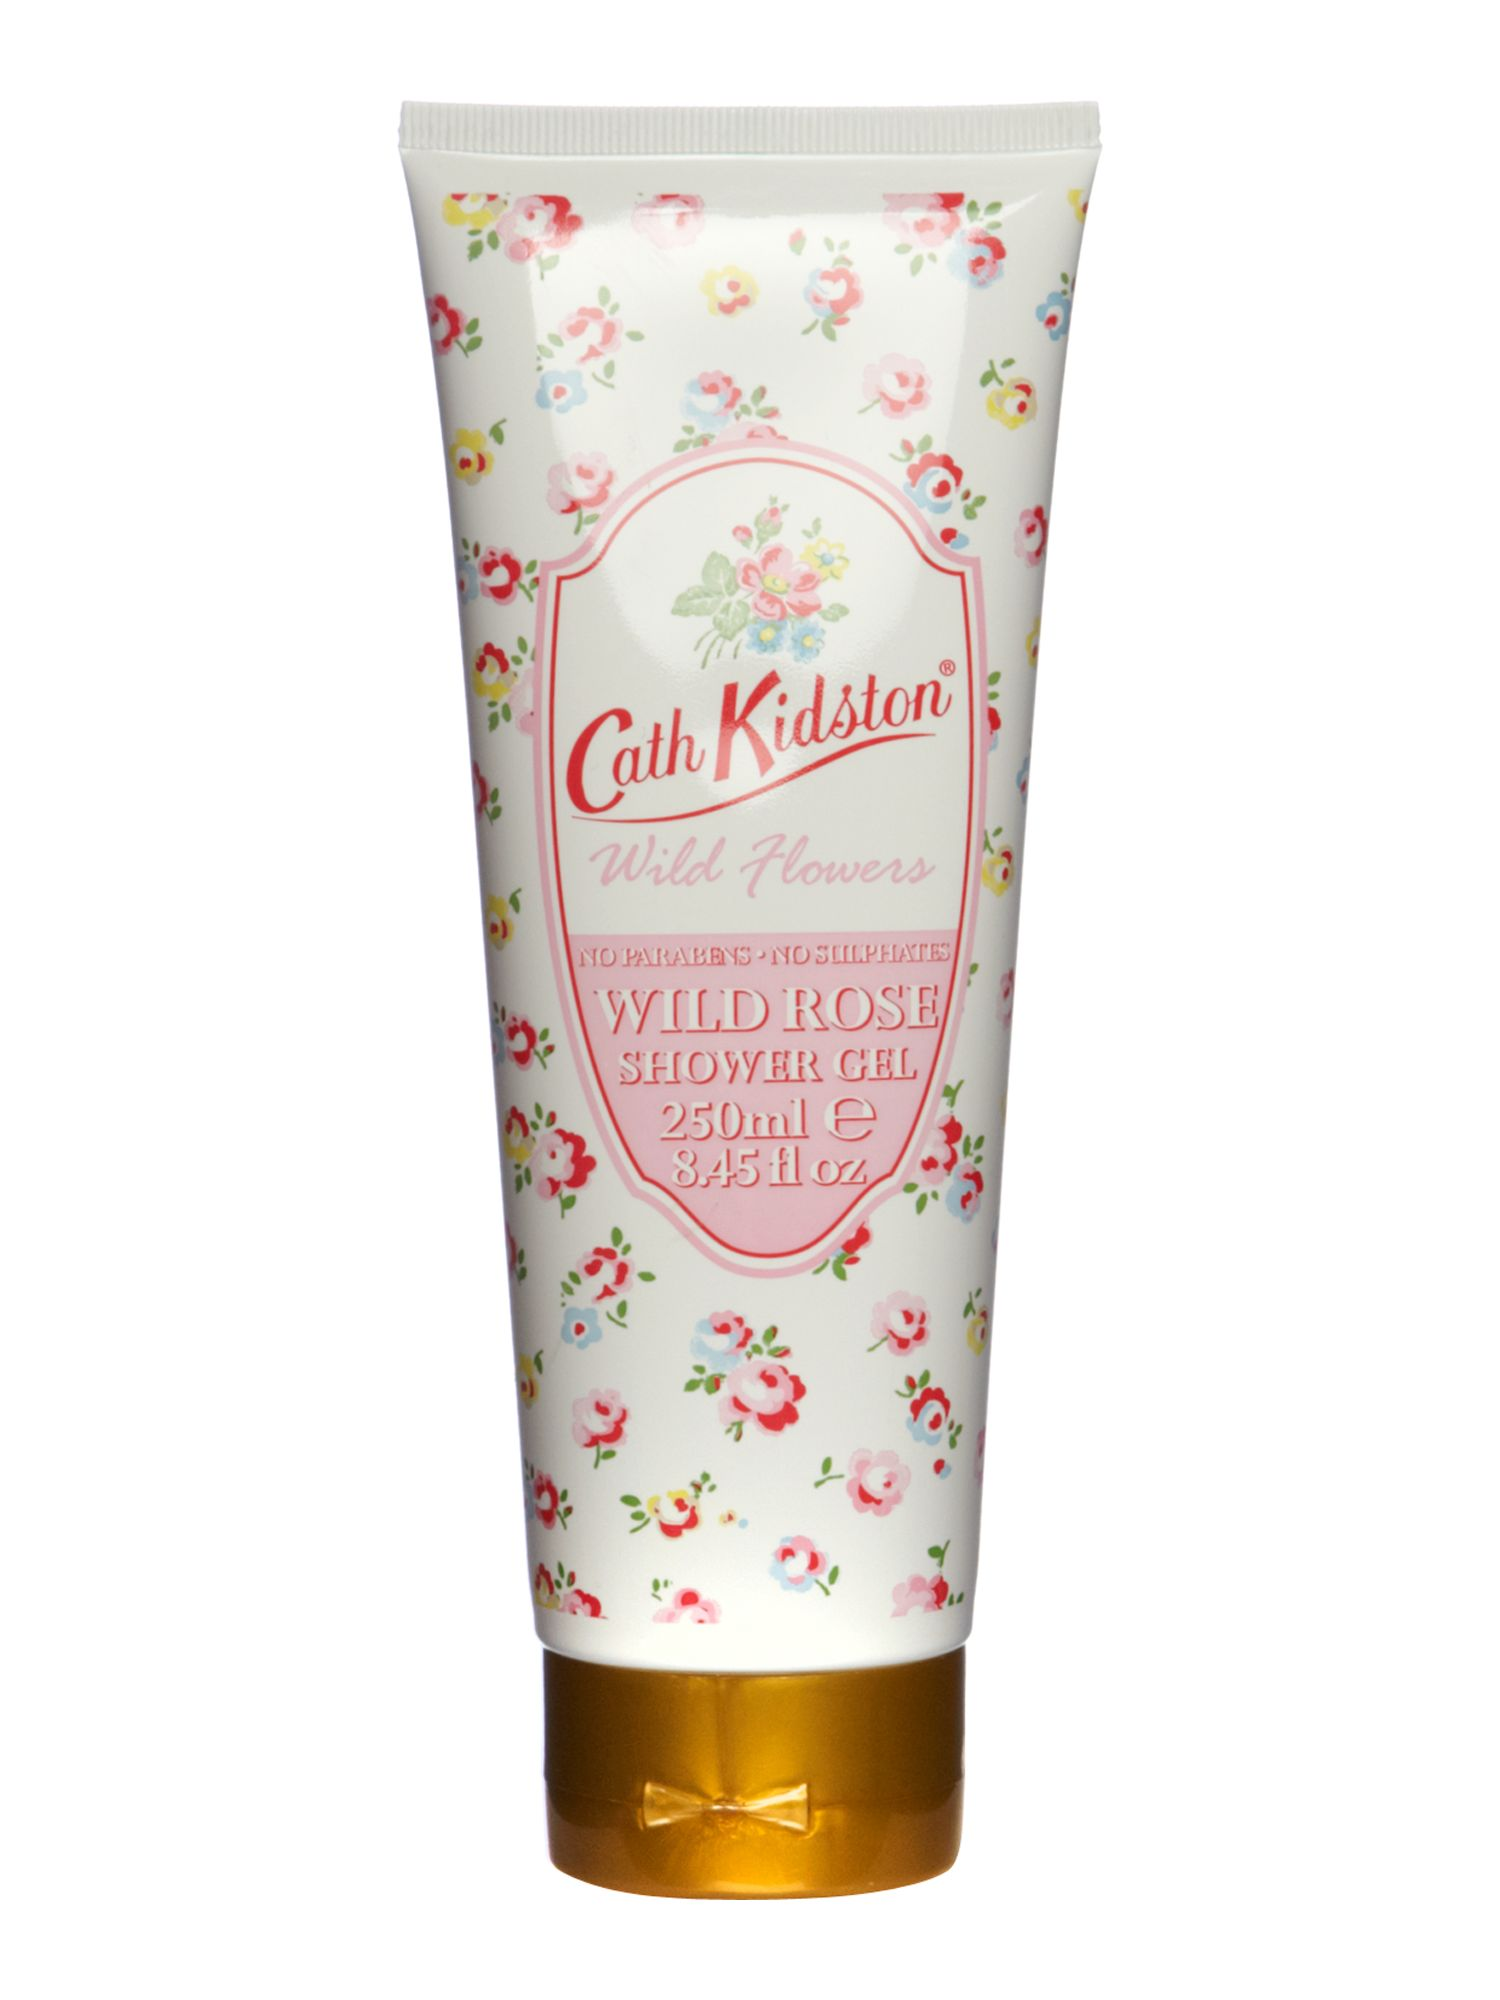 Cath Kidson Wild Rose shower gel 250ml